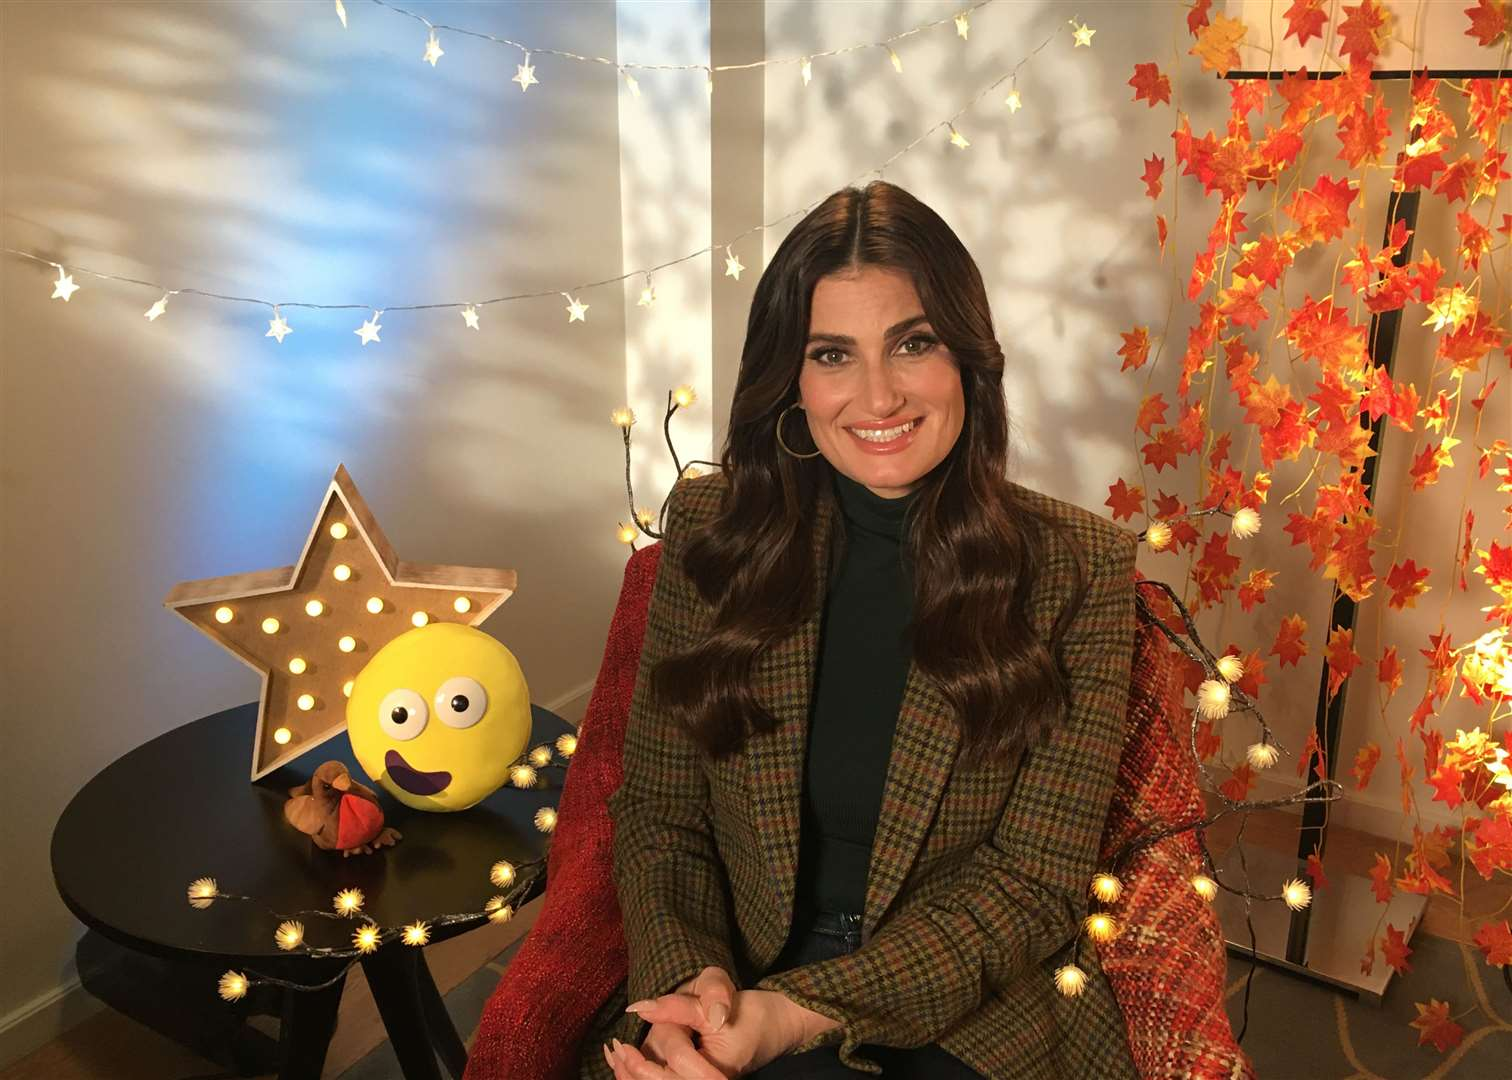 Idina Menzel is going to read a Bedtime Story on Sunday, November 24